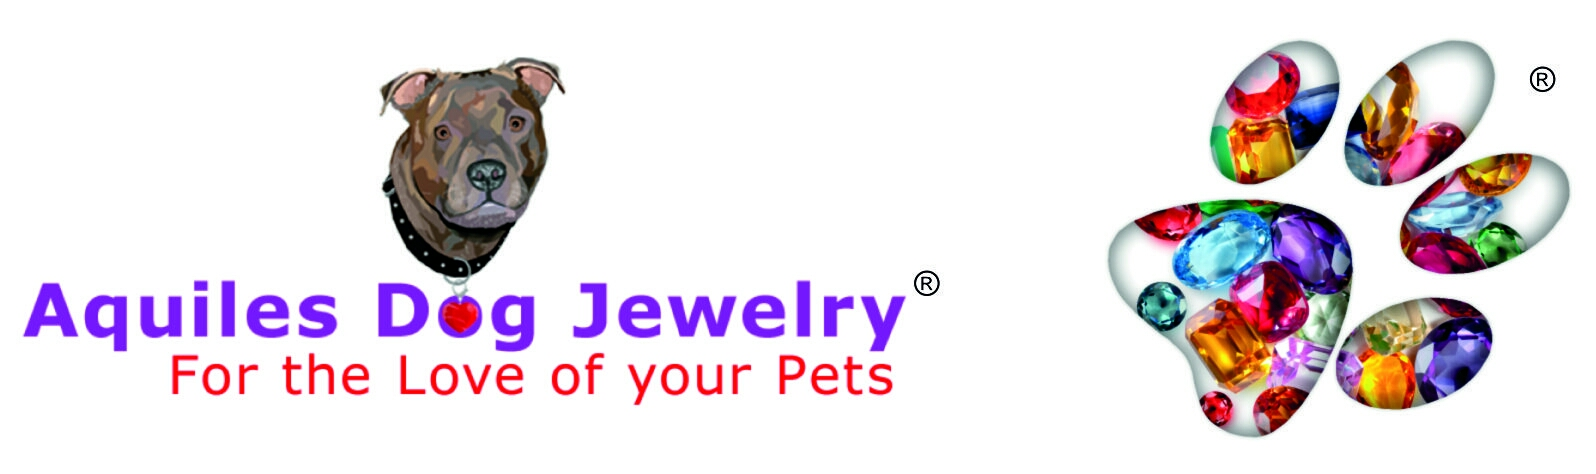 Aquiles Dog Jewelry